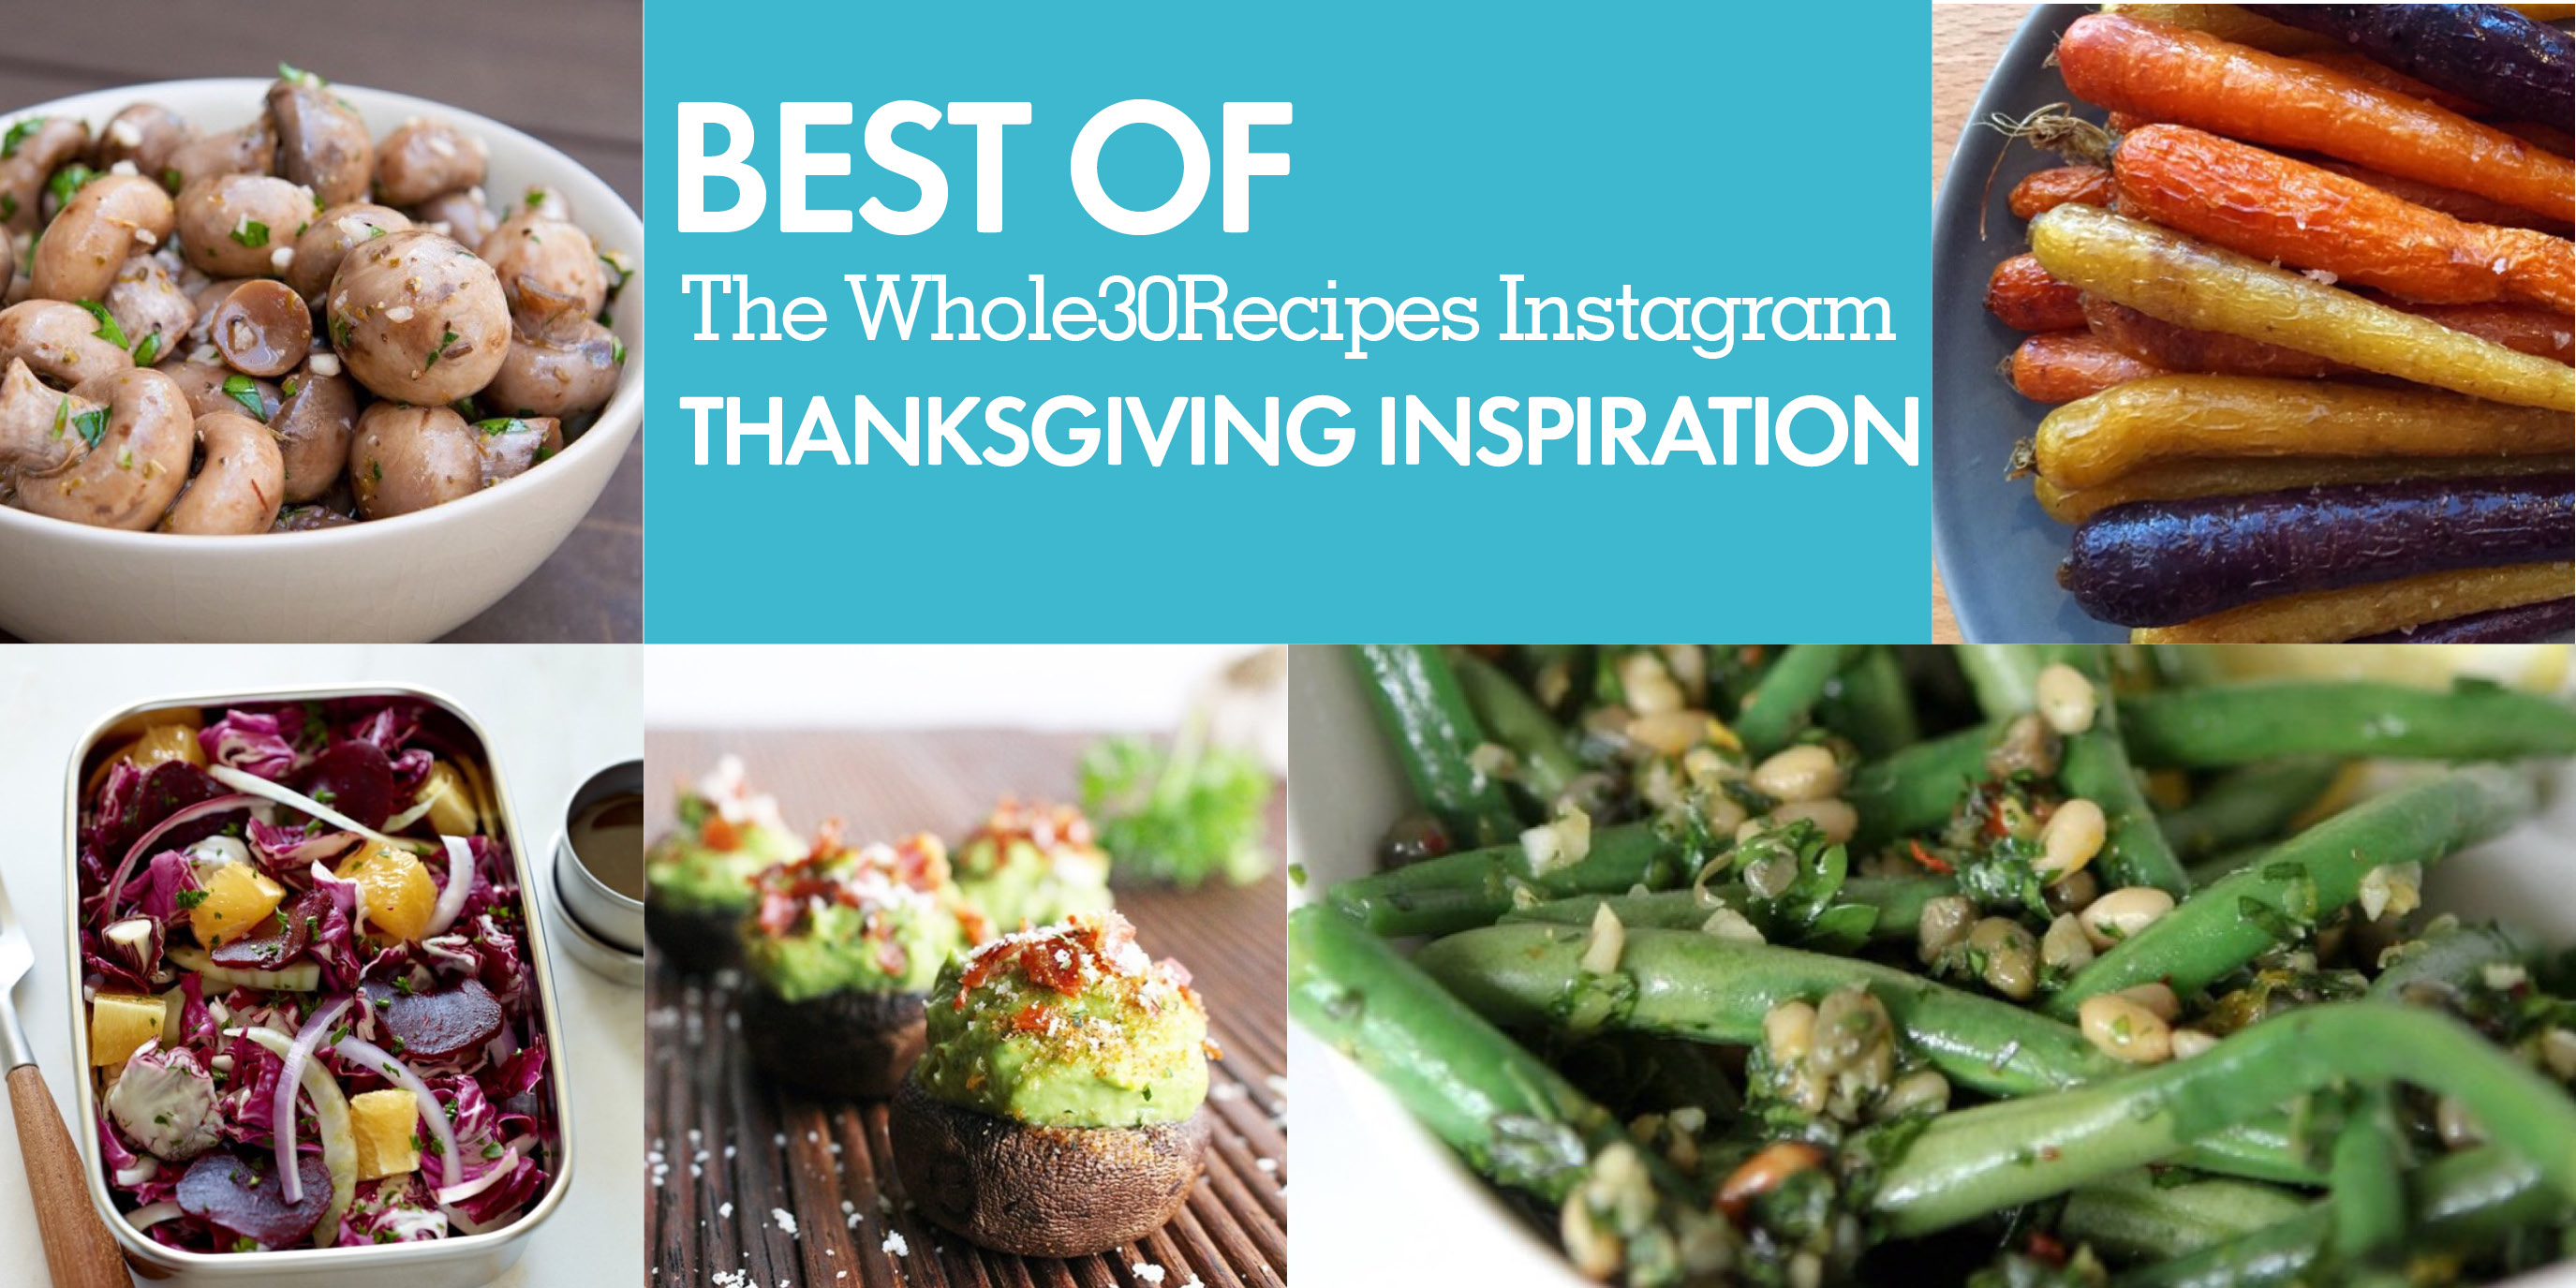 Best of whole30 recipes thanksgiving inspiration the whole30 best of whole30 recipes thanksgiving inspiration the whole30 program forumfinder Gallery